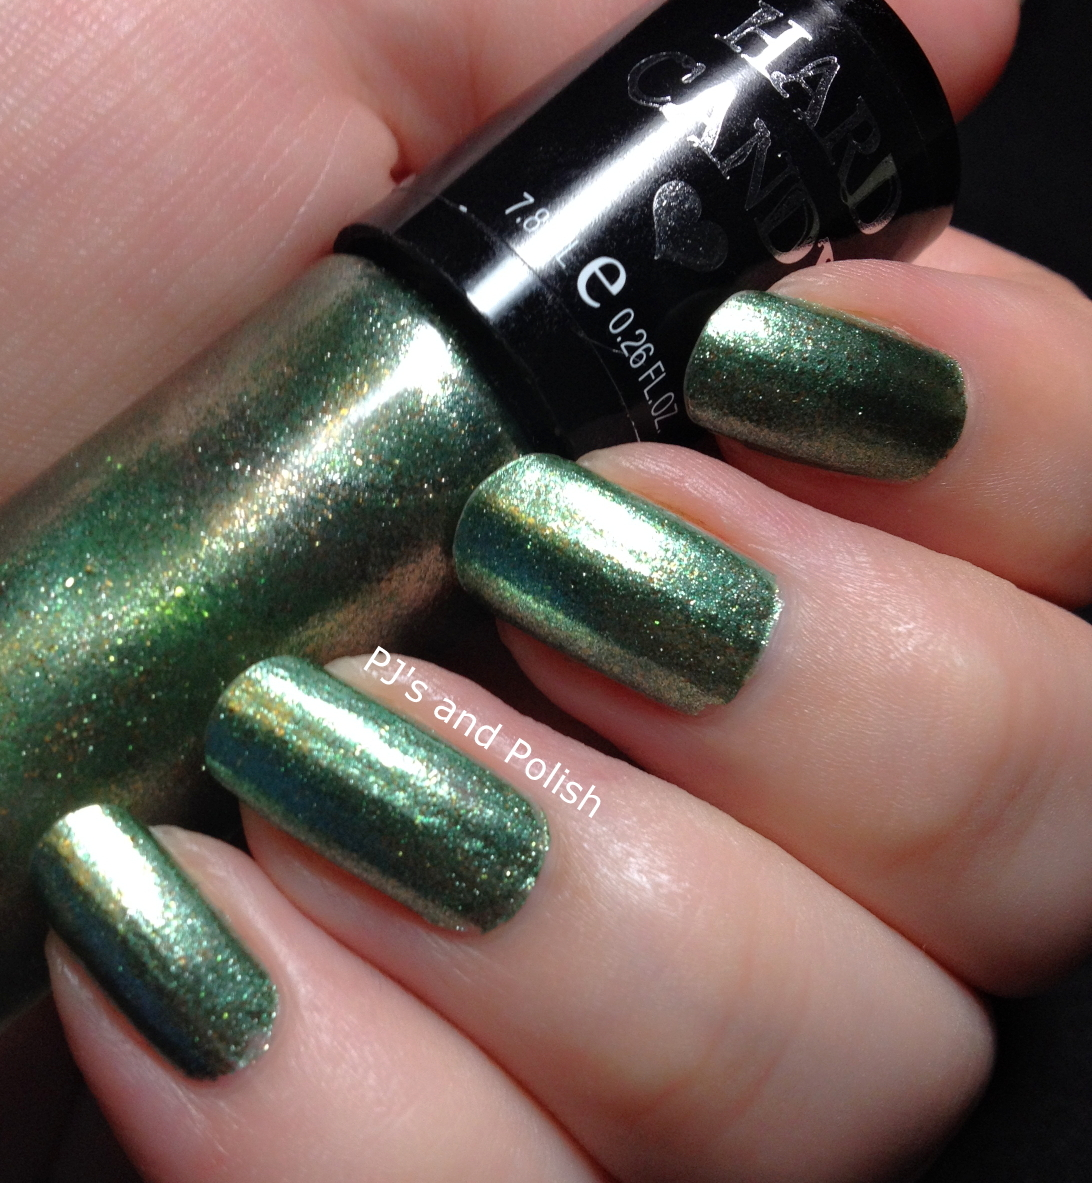 Swatch and Review Hard Candy Crush on Ivy Foil Metallic HK Girl